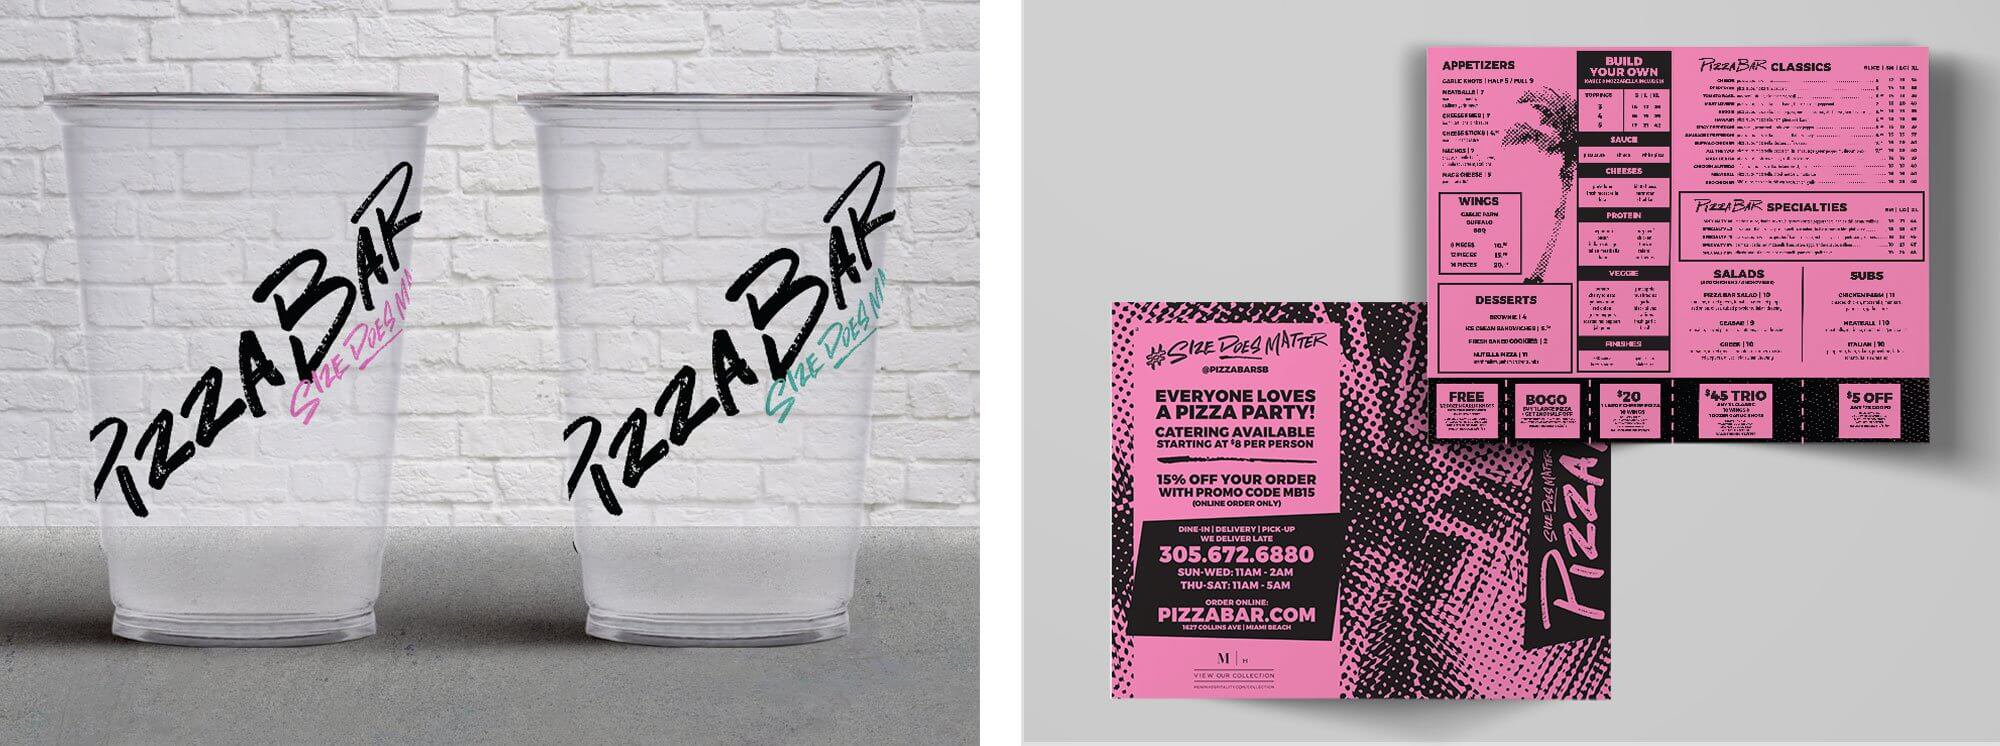 Pizza Bar branded cups